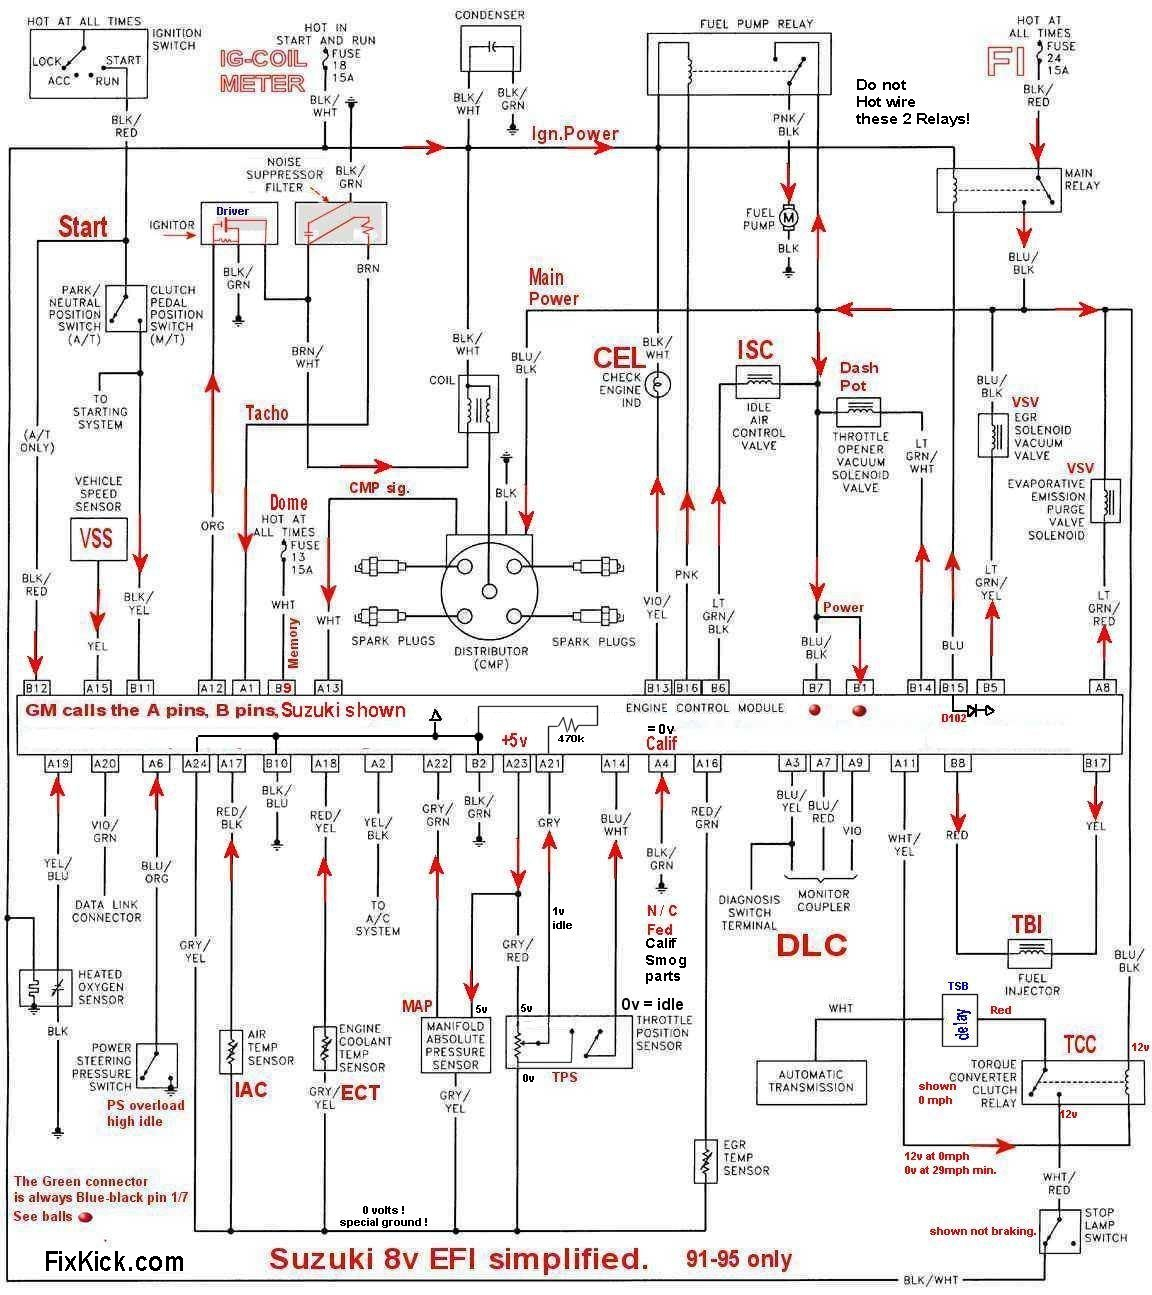 1995 Chevy Silverado Radio Wiring Harness Diagram from www.fixkick.com